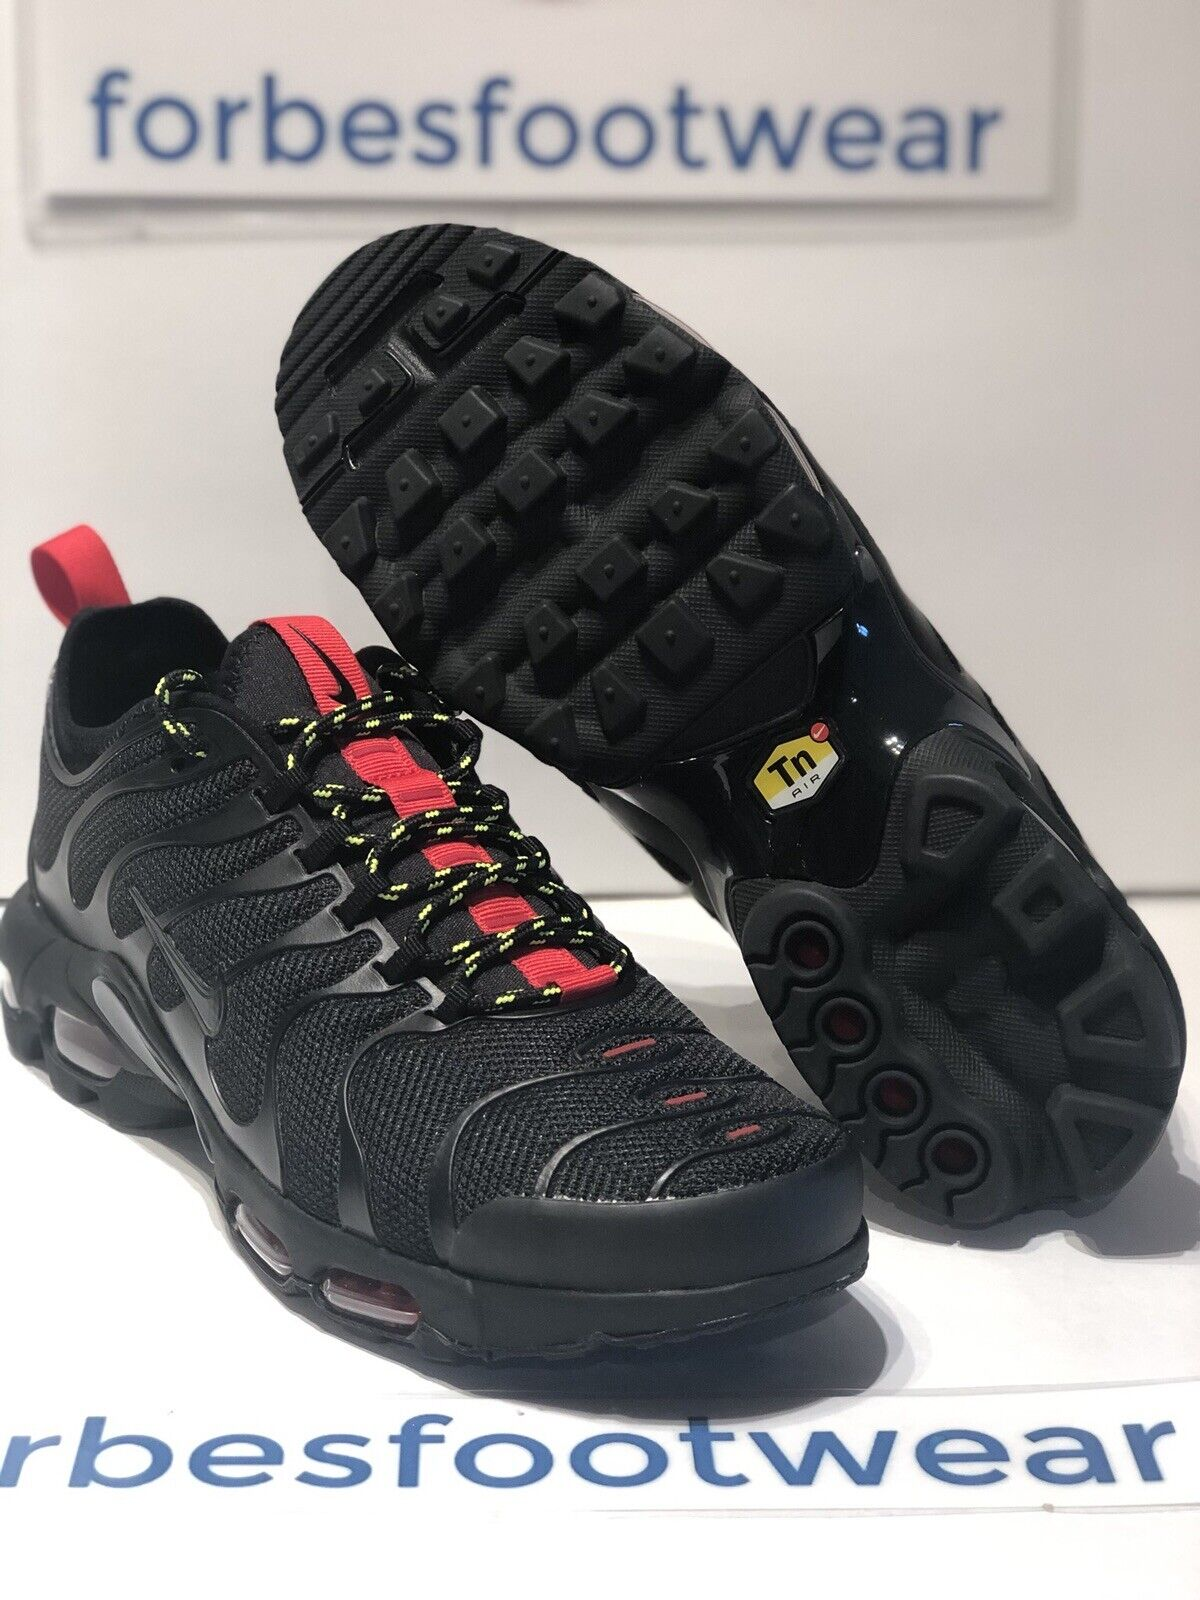 free shipping 01c61 a6ee7 Nike Air Max Plus TN Ultra Ar4234-002 Black/university Red/volt Sz 8